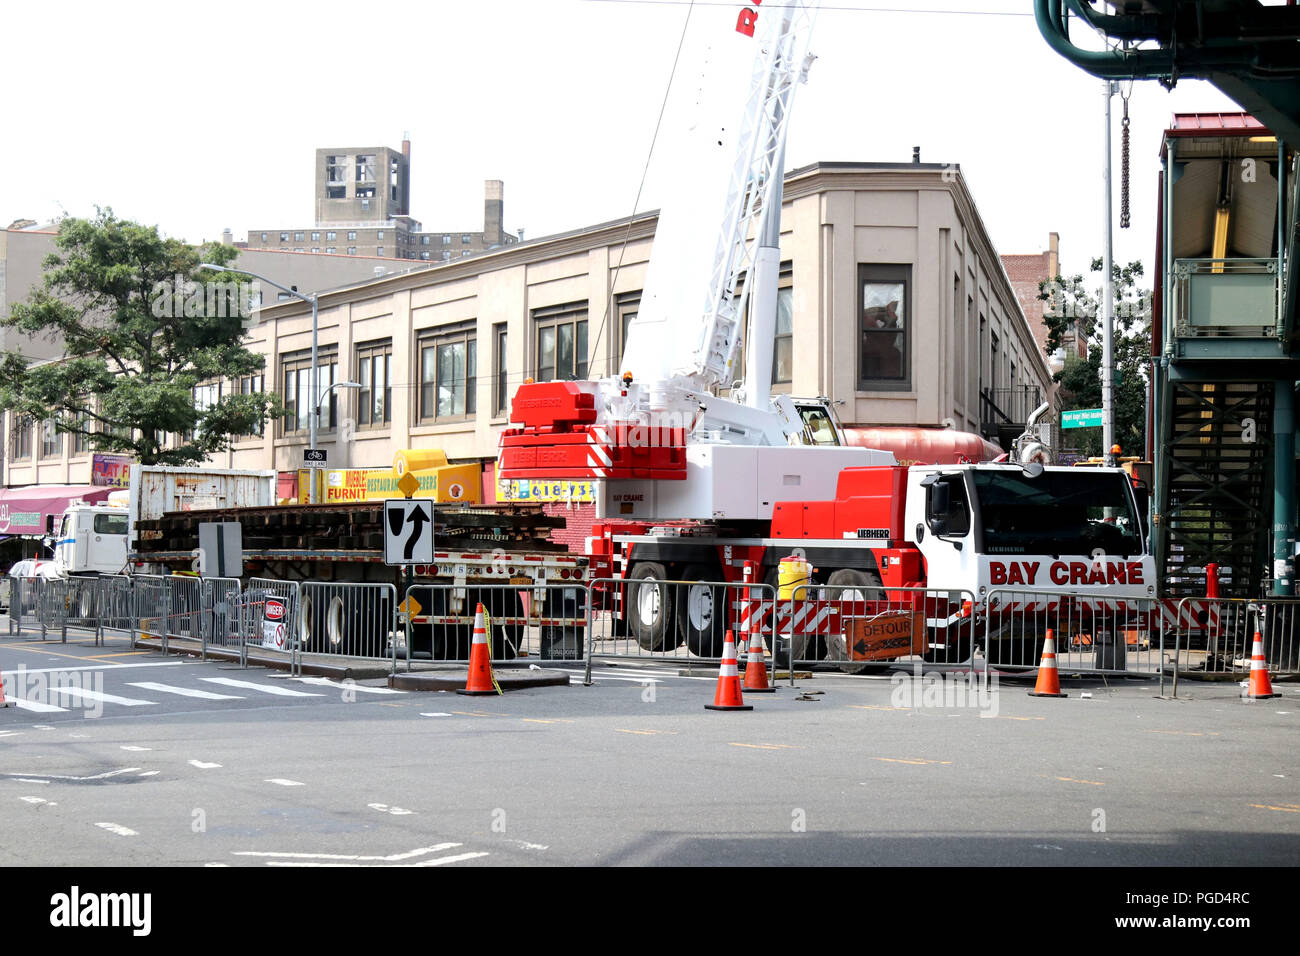 Nyc Transit Bus In On Stock Photos & Nyc Transit Bus In On